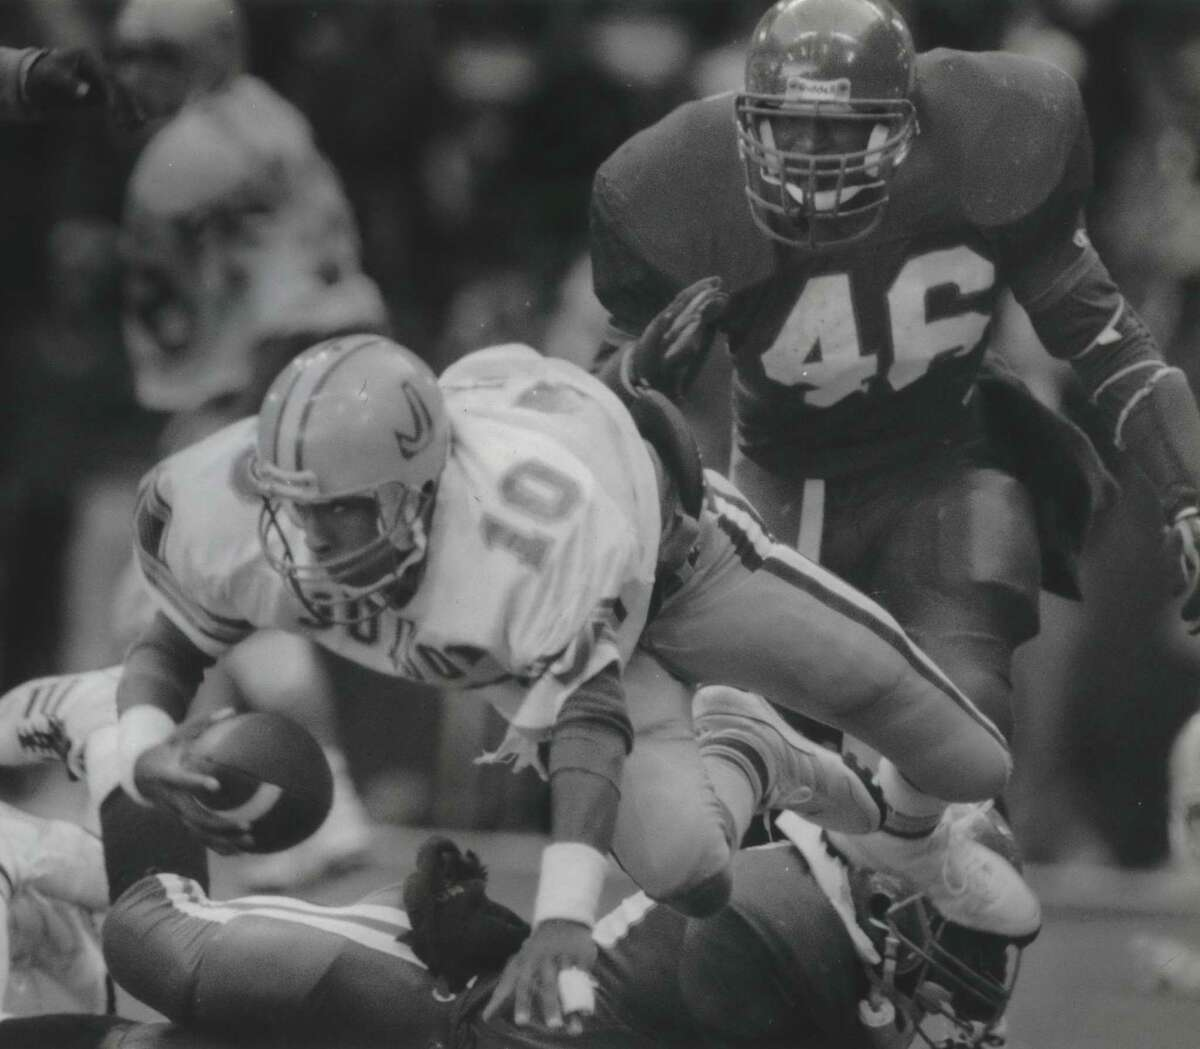 Judson quarterback Mike Jinks (10) dives for an extra yard as Dallas Carter's Jesse Armstead (46) pursues during the 1988 Class 5A state championship game at Texas Stadium in Irving